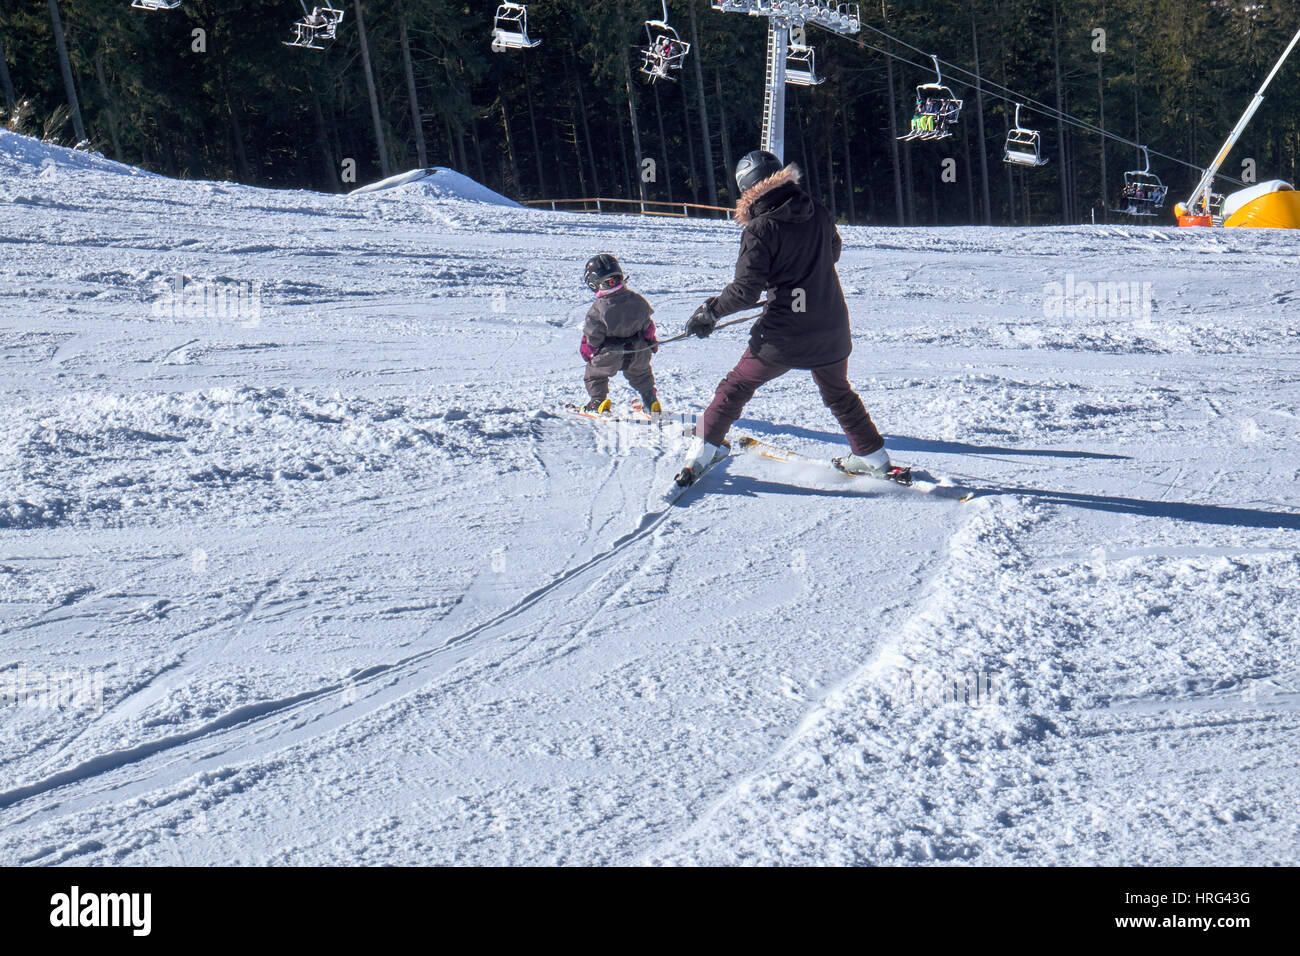 WINTERBERG, GERMANY - FEBRUARY 14, 2017: Mother and child in harness learning how to ski downhill at Ski Carousel - Stock Image